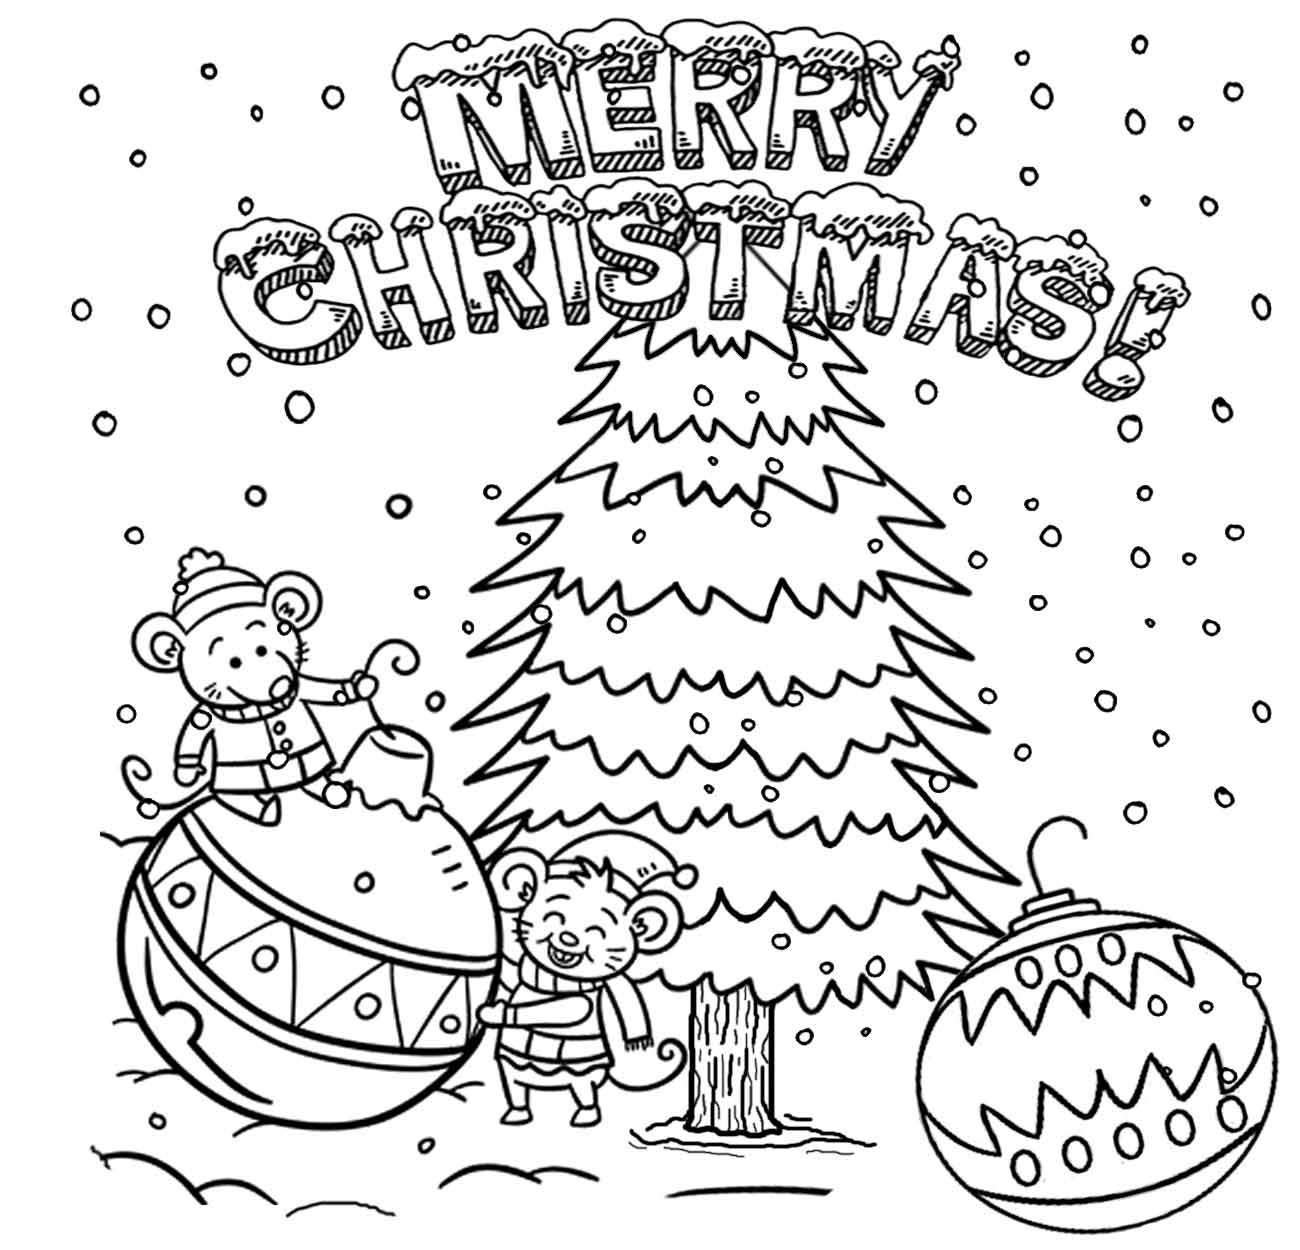 Free Fun Christmas Coloring Pages For additionally Hearts Valentines Day Coloring moreover Family Ornaments Reunion together with Jamee Rae 7 further Western border. on purple and gold christmas tree html